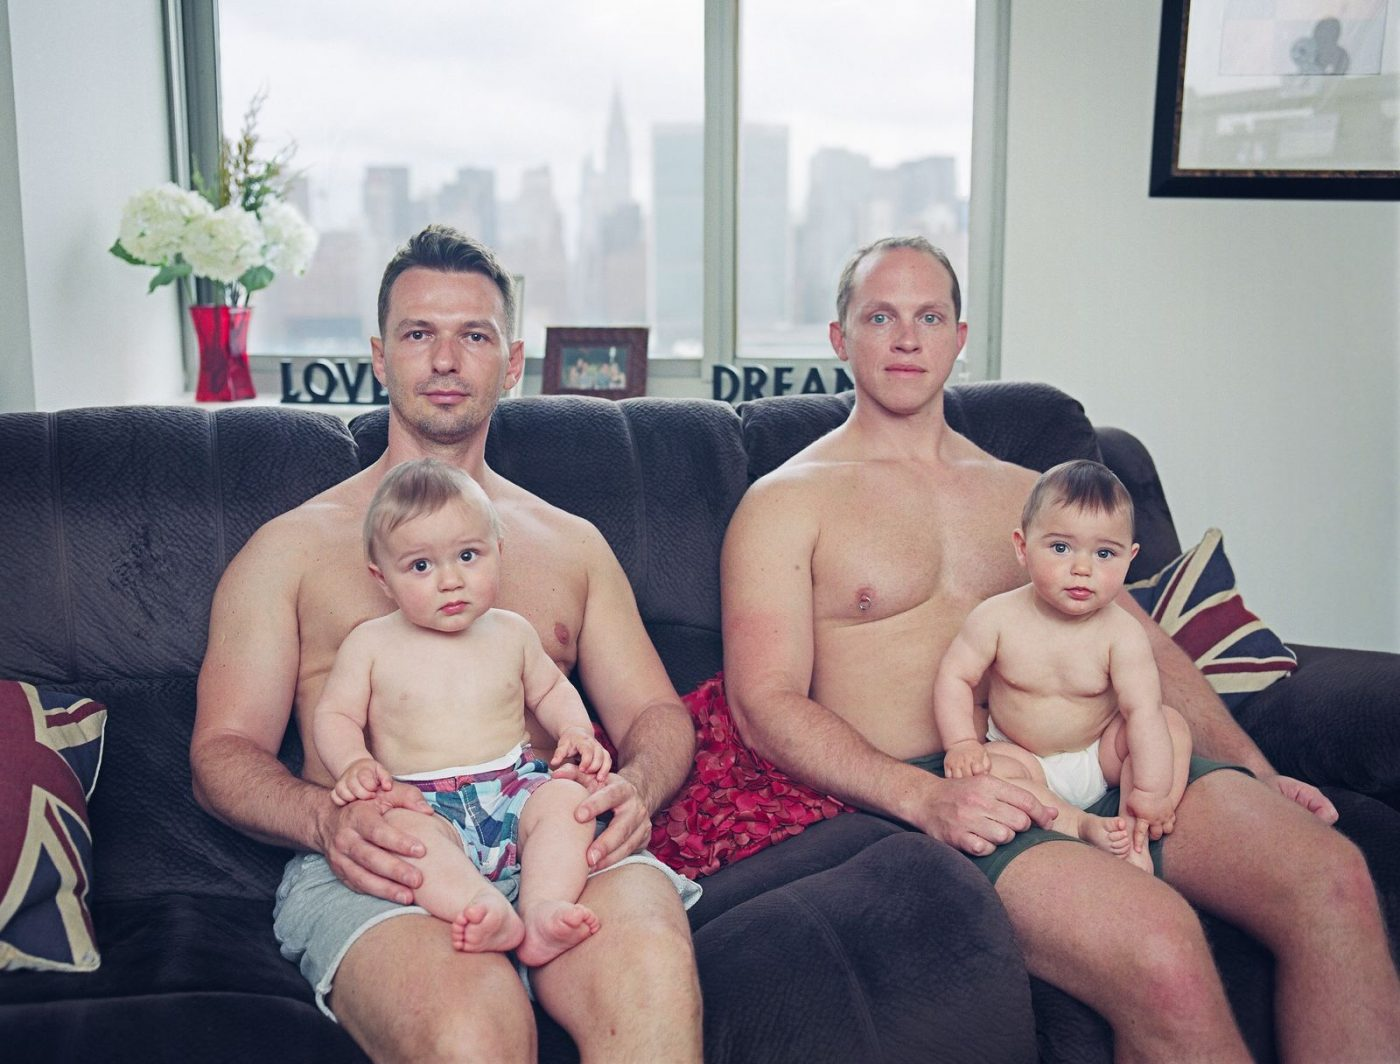 PEOPLE: UNITED NATIONS FROM THE SERIES GAY DADS by BART HEYNEN (BELGIUM) FIRST WINNER